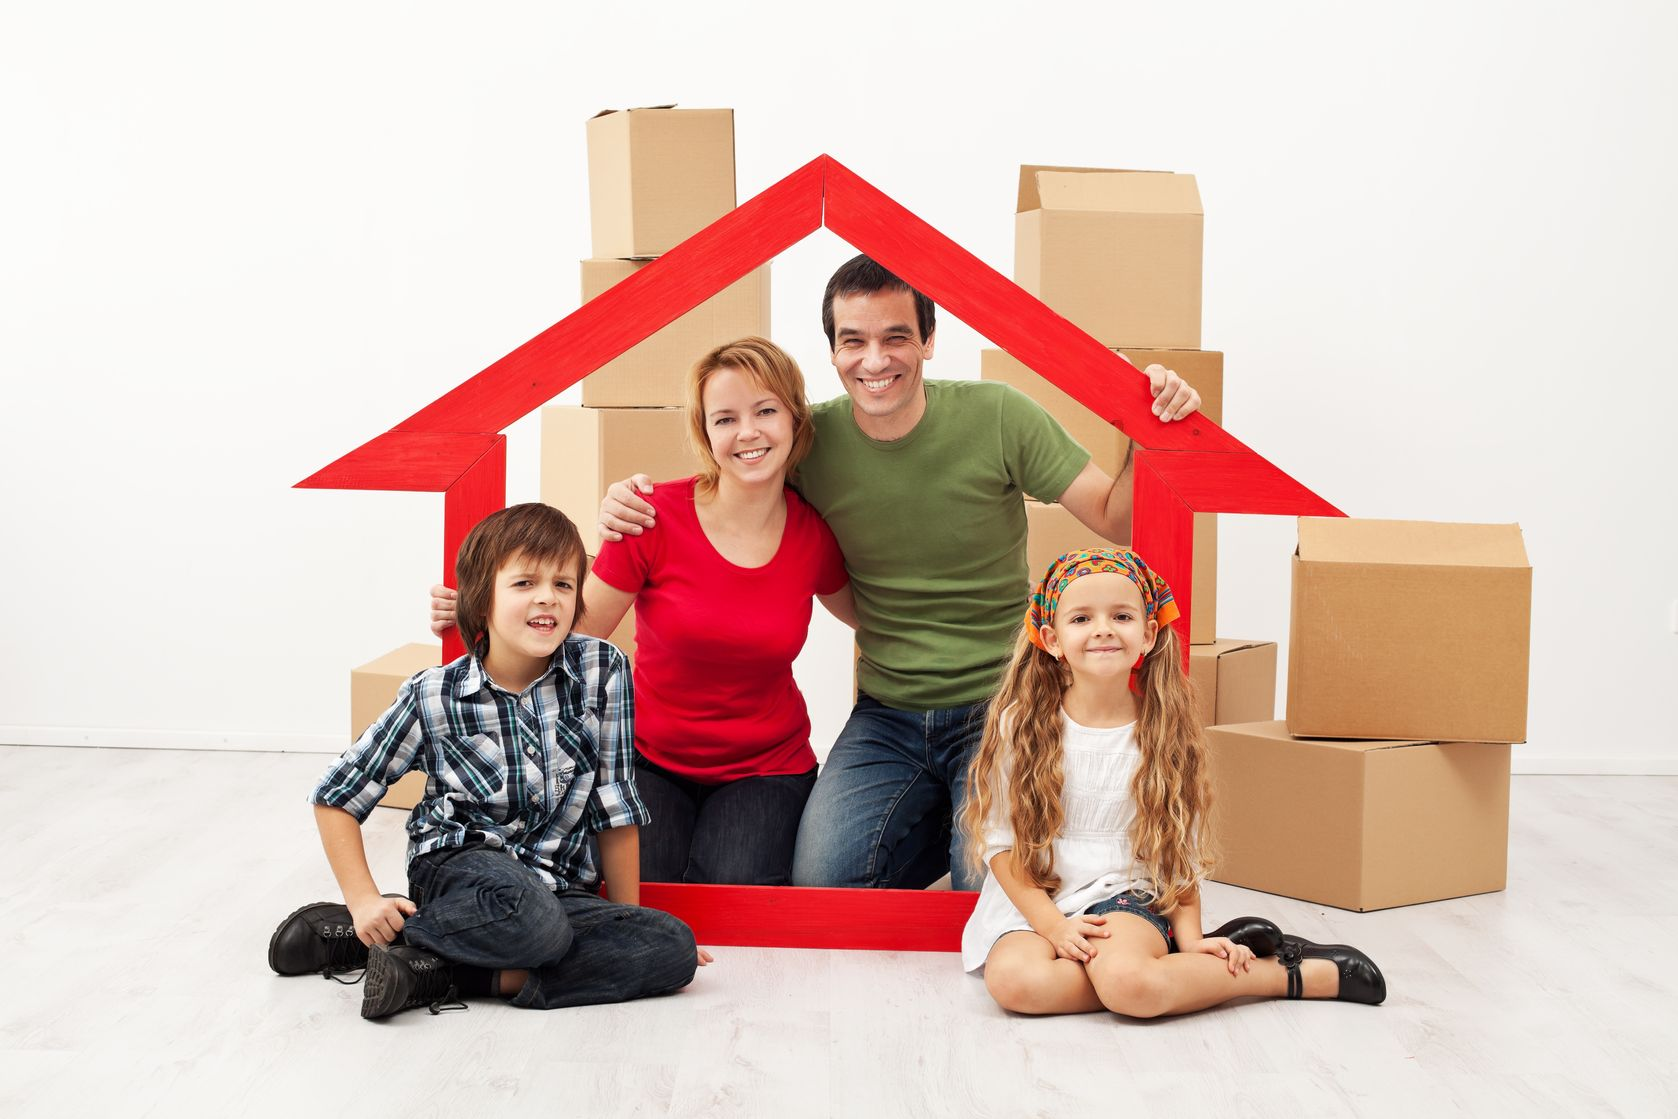 Albuquerque, NM Homeowners Insurance